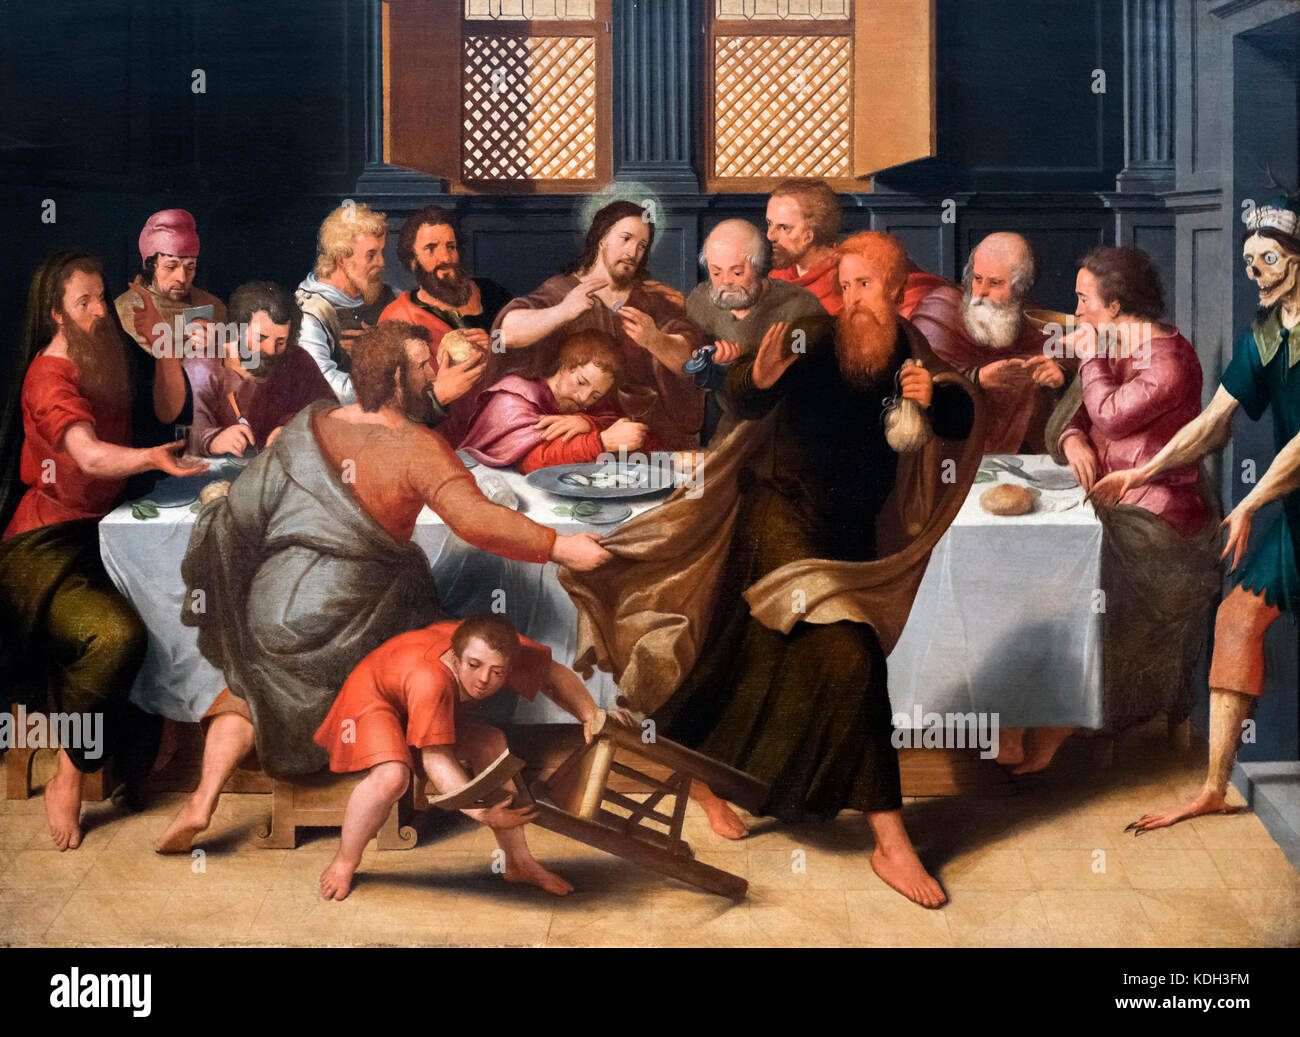 The Last Supper by Pieter Pourbus (1523/4-1584), oil on panel, 1548 - Stock Image